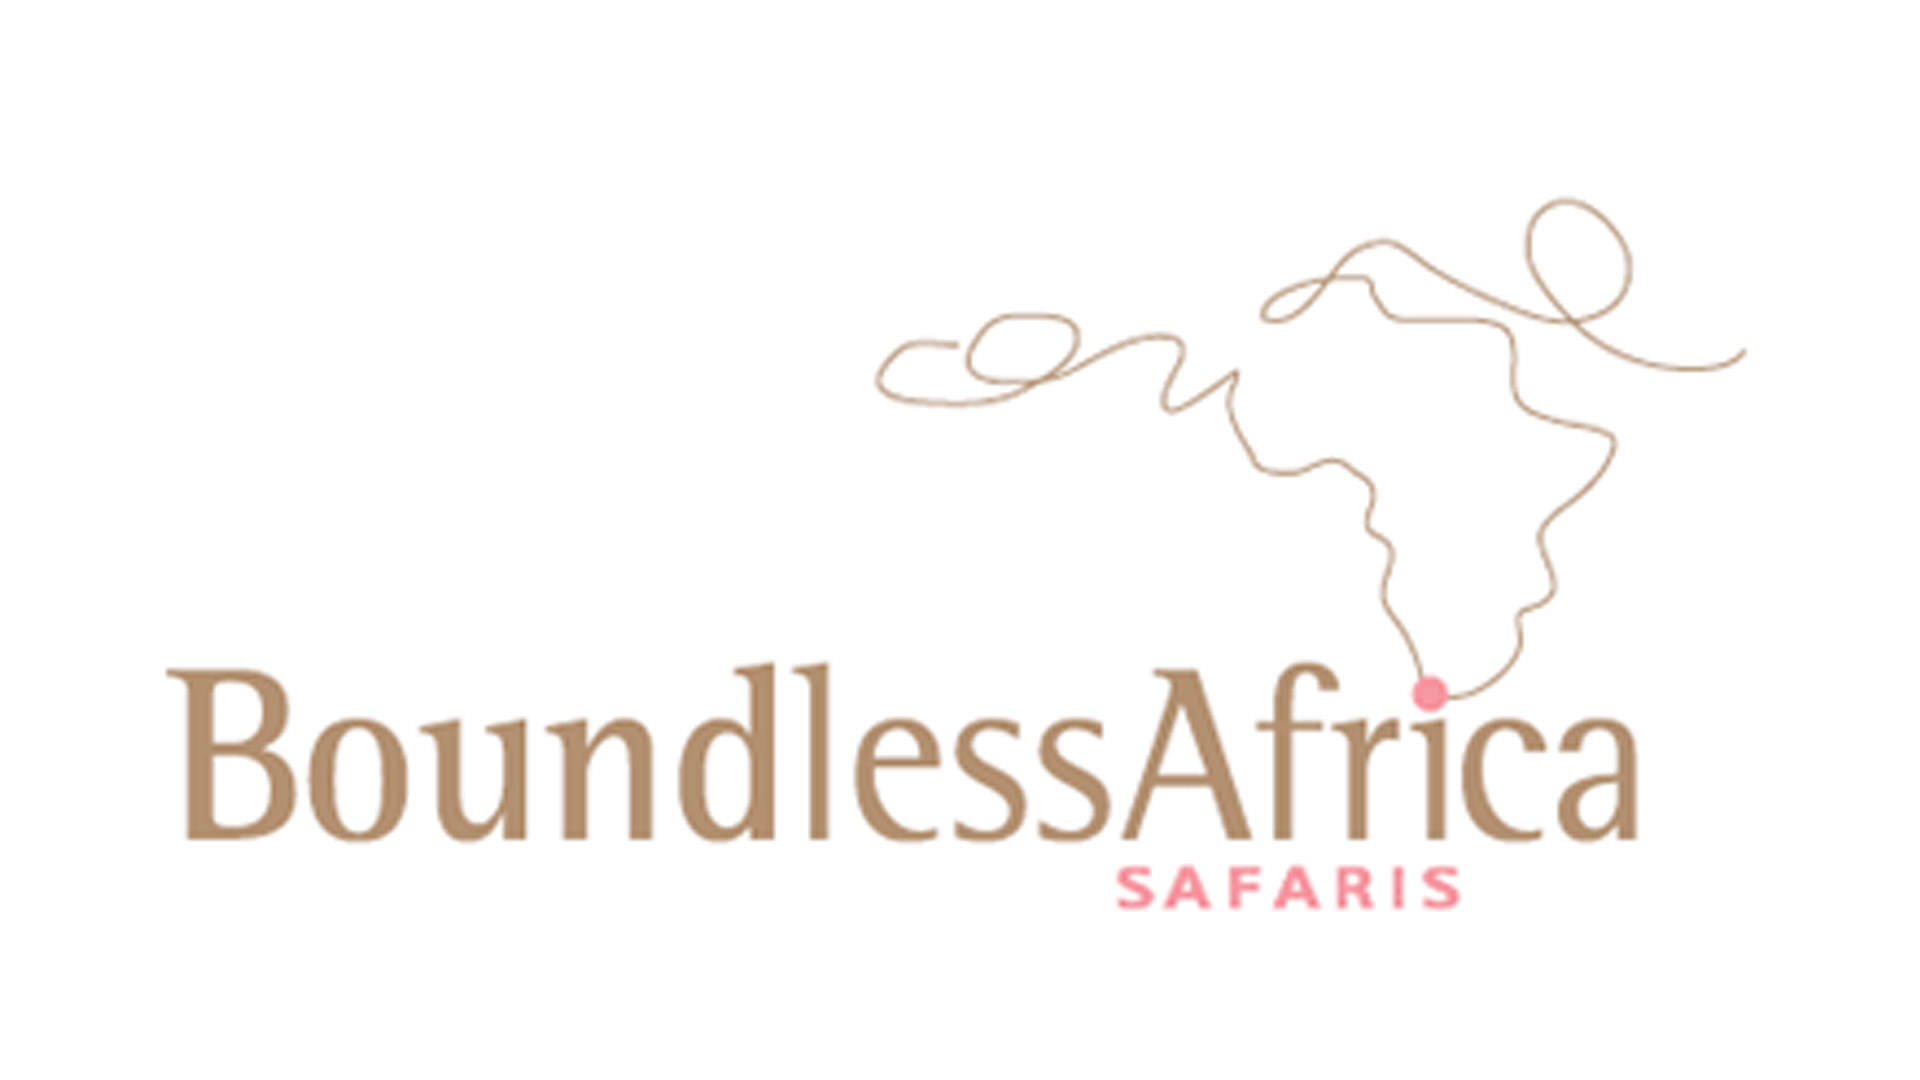 Boundless Africa Safaris